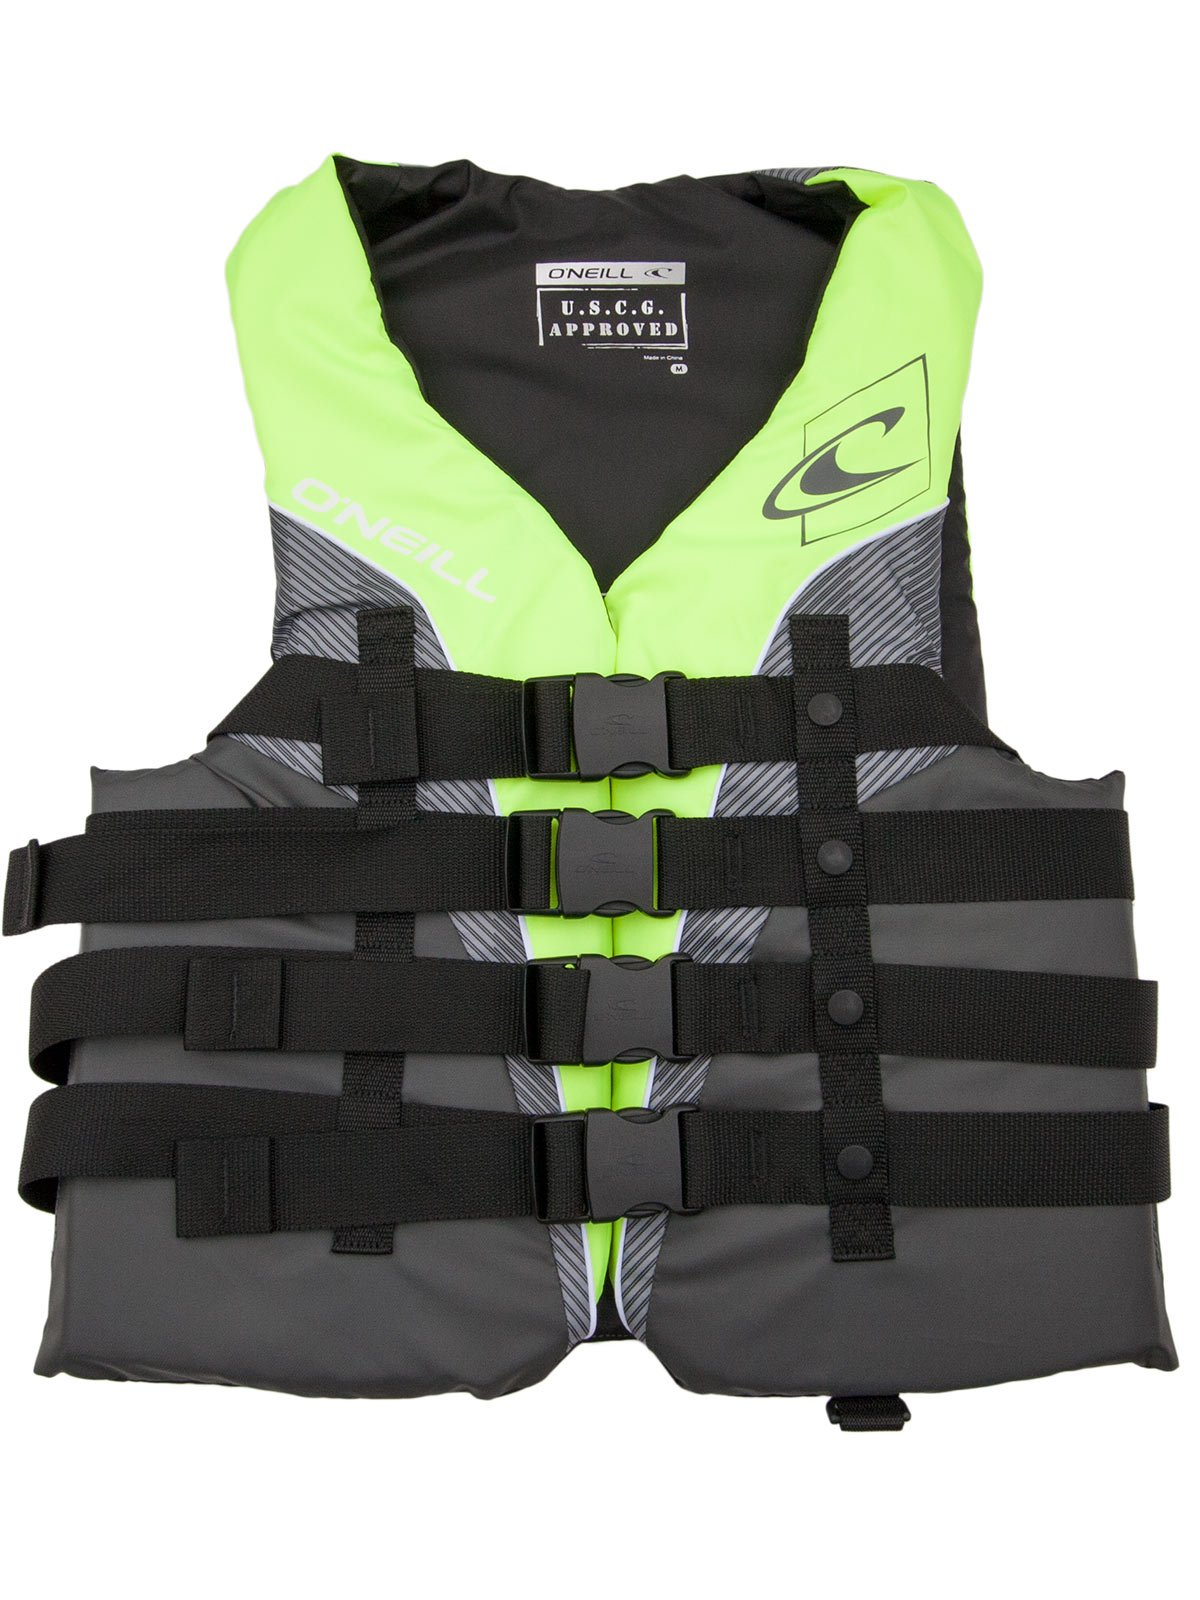 O'Neill Mens Superlite USCG Life Vest 4XL Lime/Graphite/Smoke/White (4723) by O'NEILL